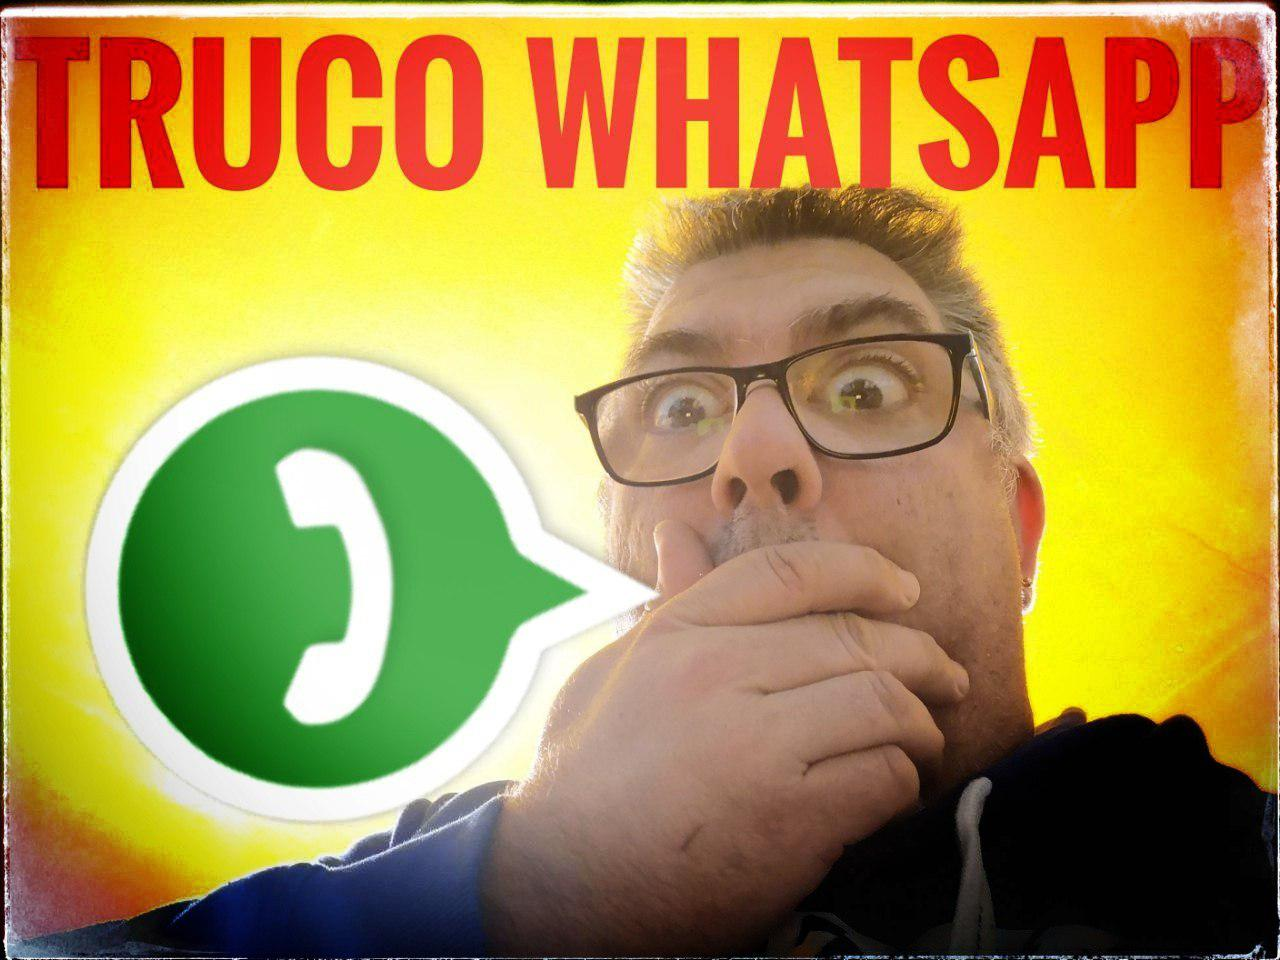 Truco WhatsApp